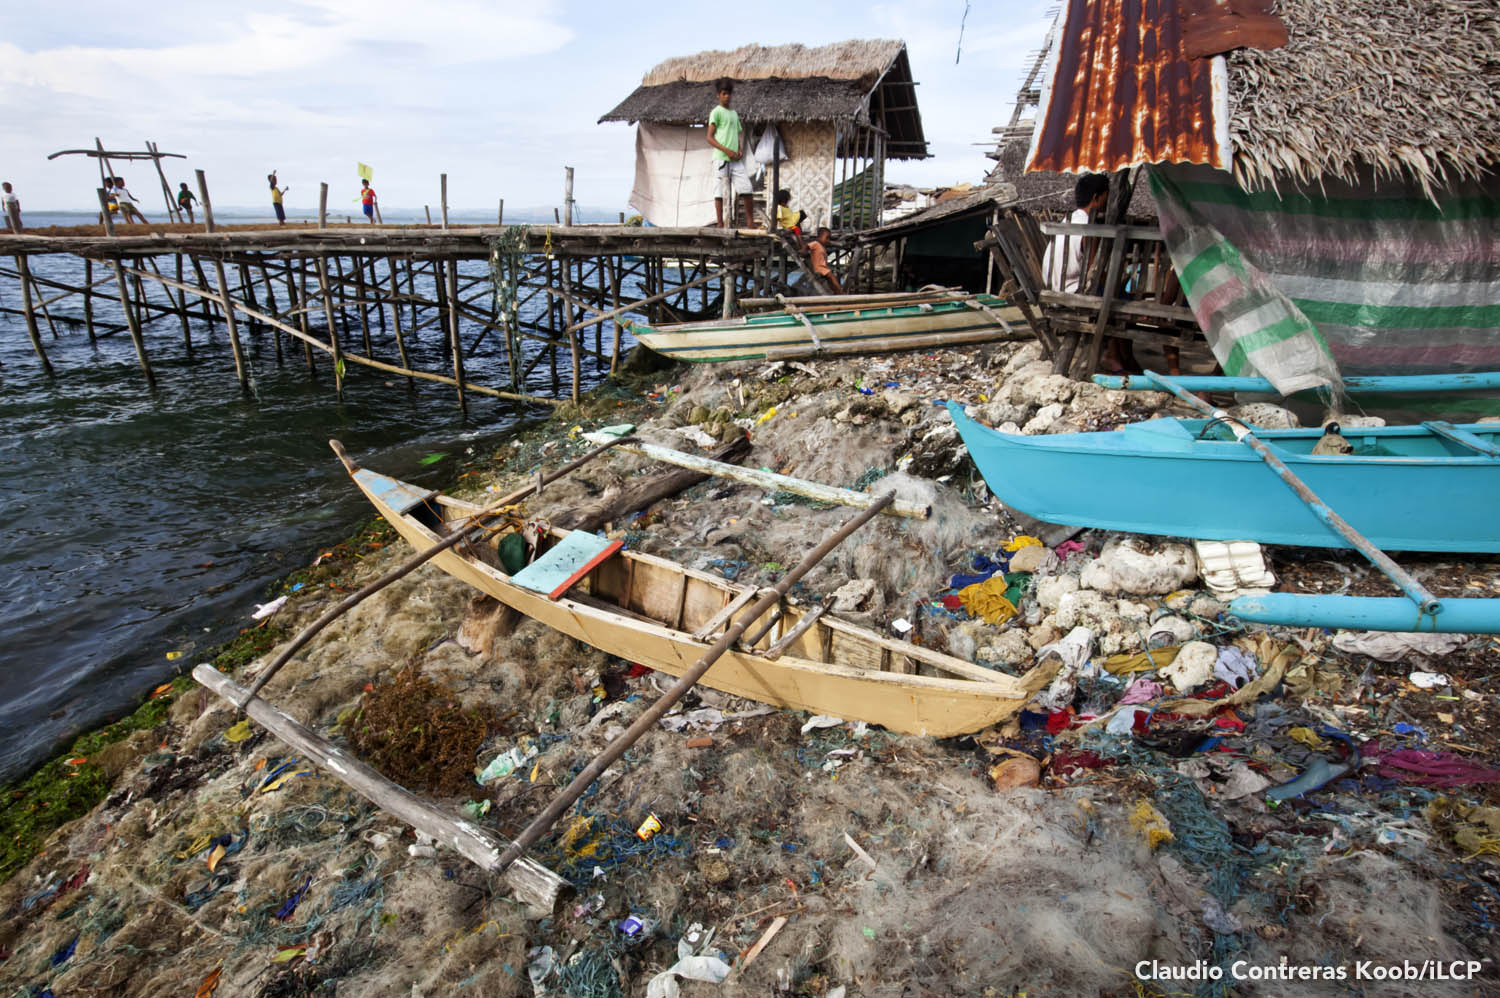 On Danajon Bank, more people means more garbage. Discarded fishing nets litter many beaches, including this one on Guindacpan Island. Claudio Contreras Koob/iLCP